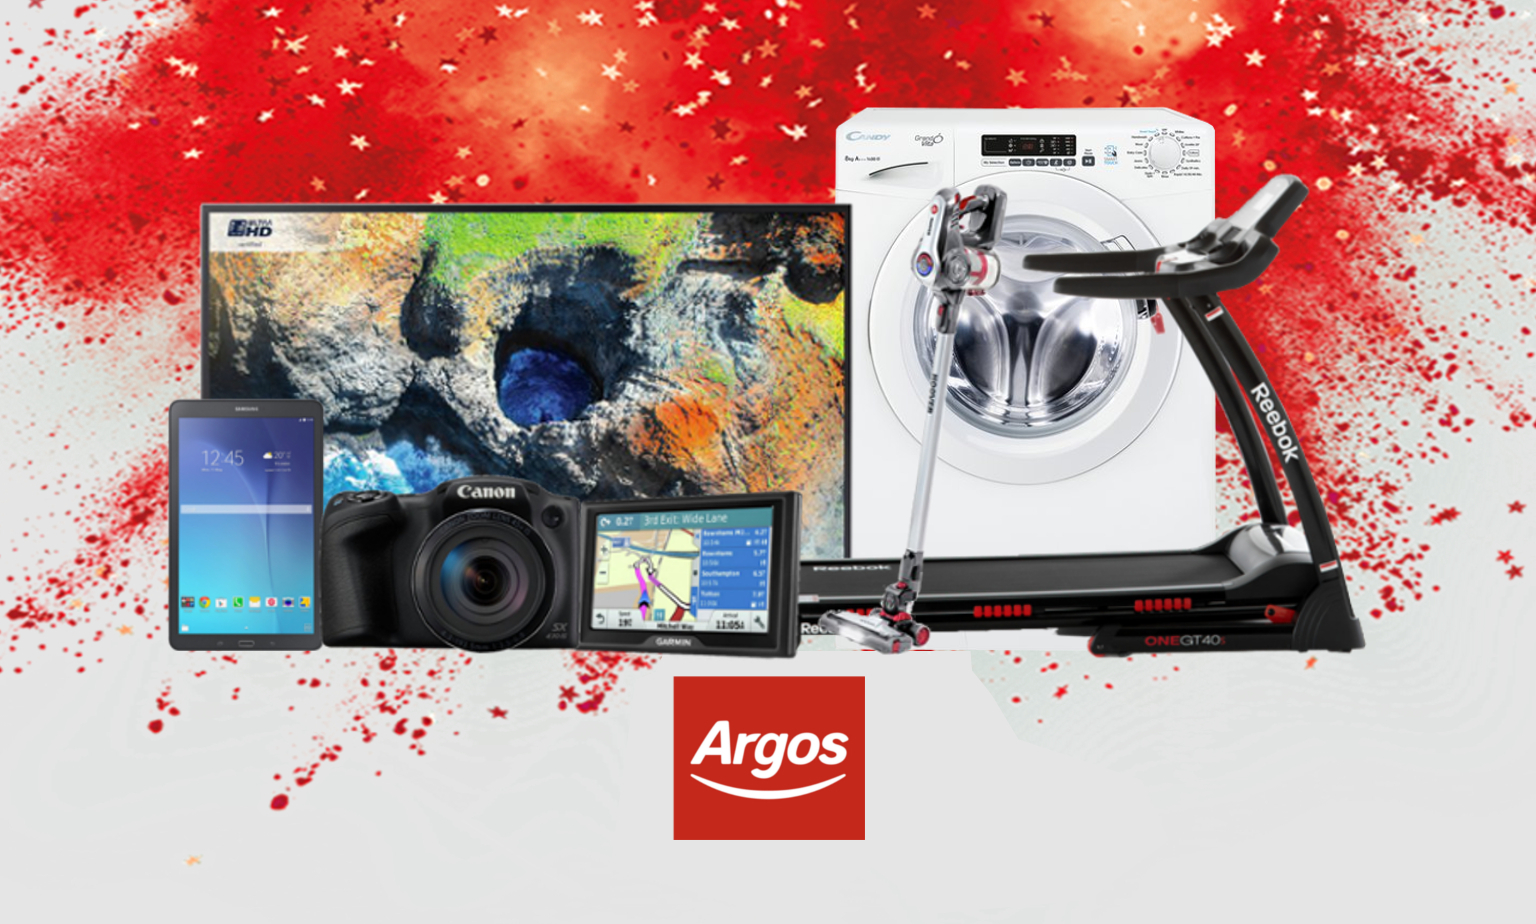 The Big January Sale by Argos